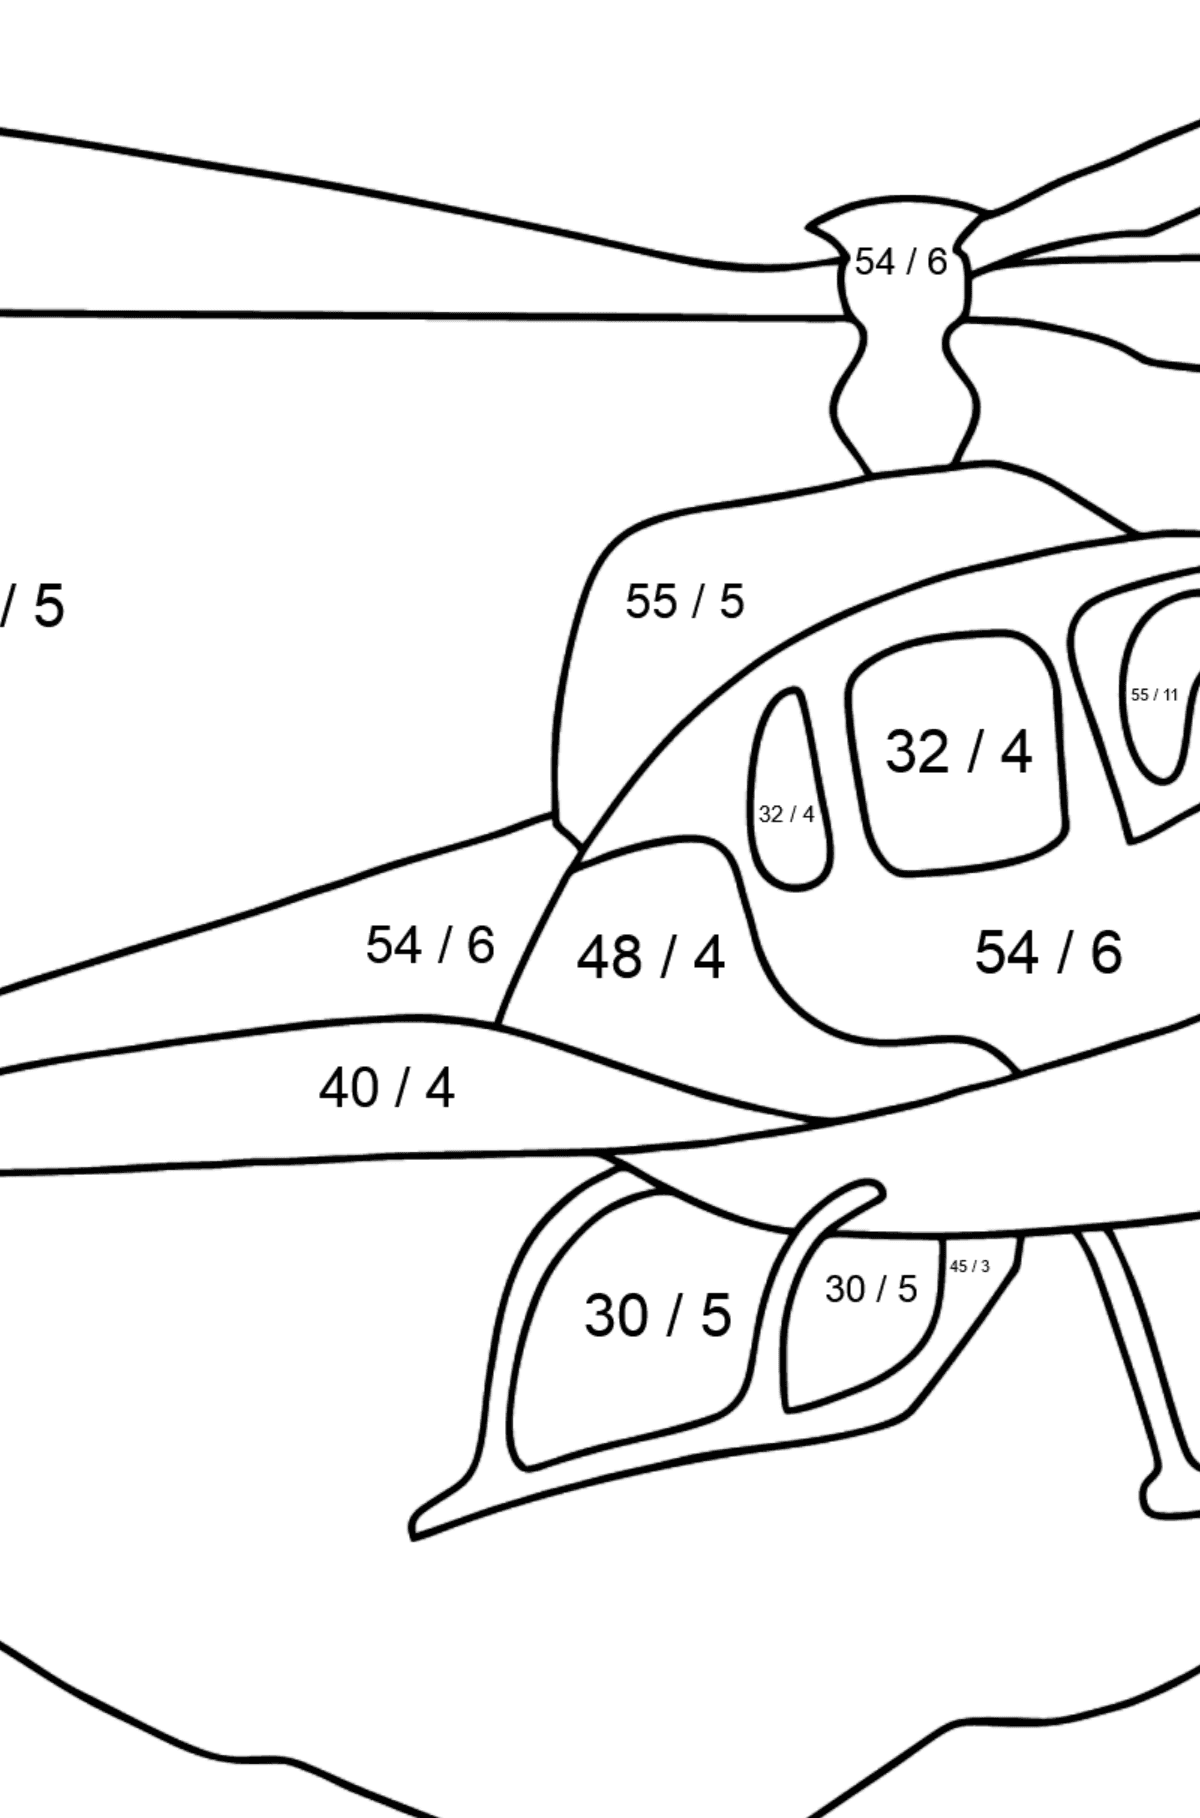 Coloring Page - A City Helicopter - Math Coloring - Division for Kids